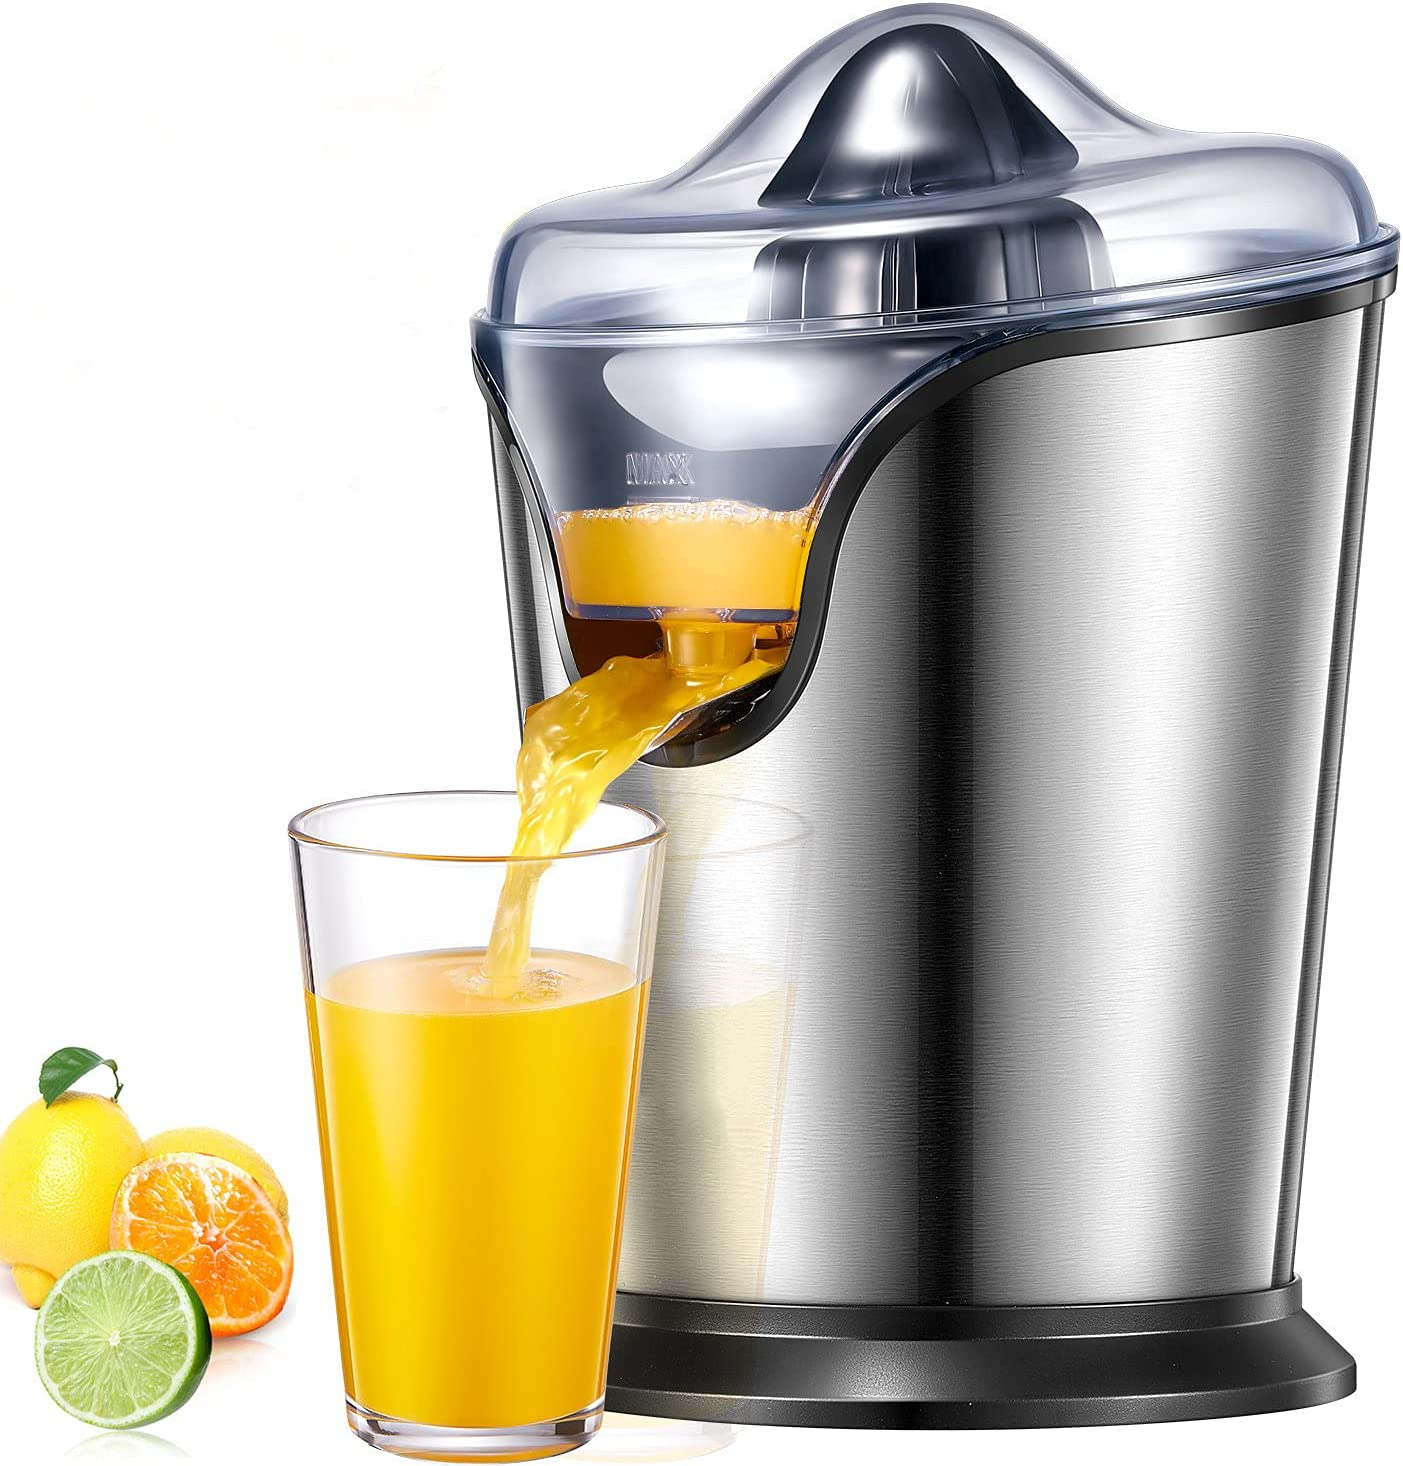 Orange Juicer Electric, 100W Citrus Juicer Squeezer with Two Interchangeable Cones Suitable for All Size of Citrus Fruits, Anti-drip Spout and Ultra Quiet Motor, BPA Free, Brushed Stainless Steel